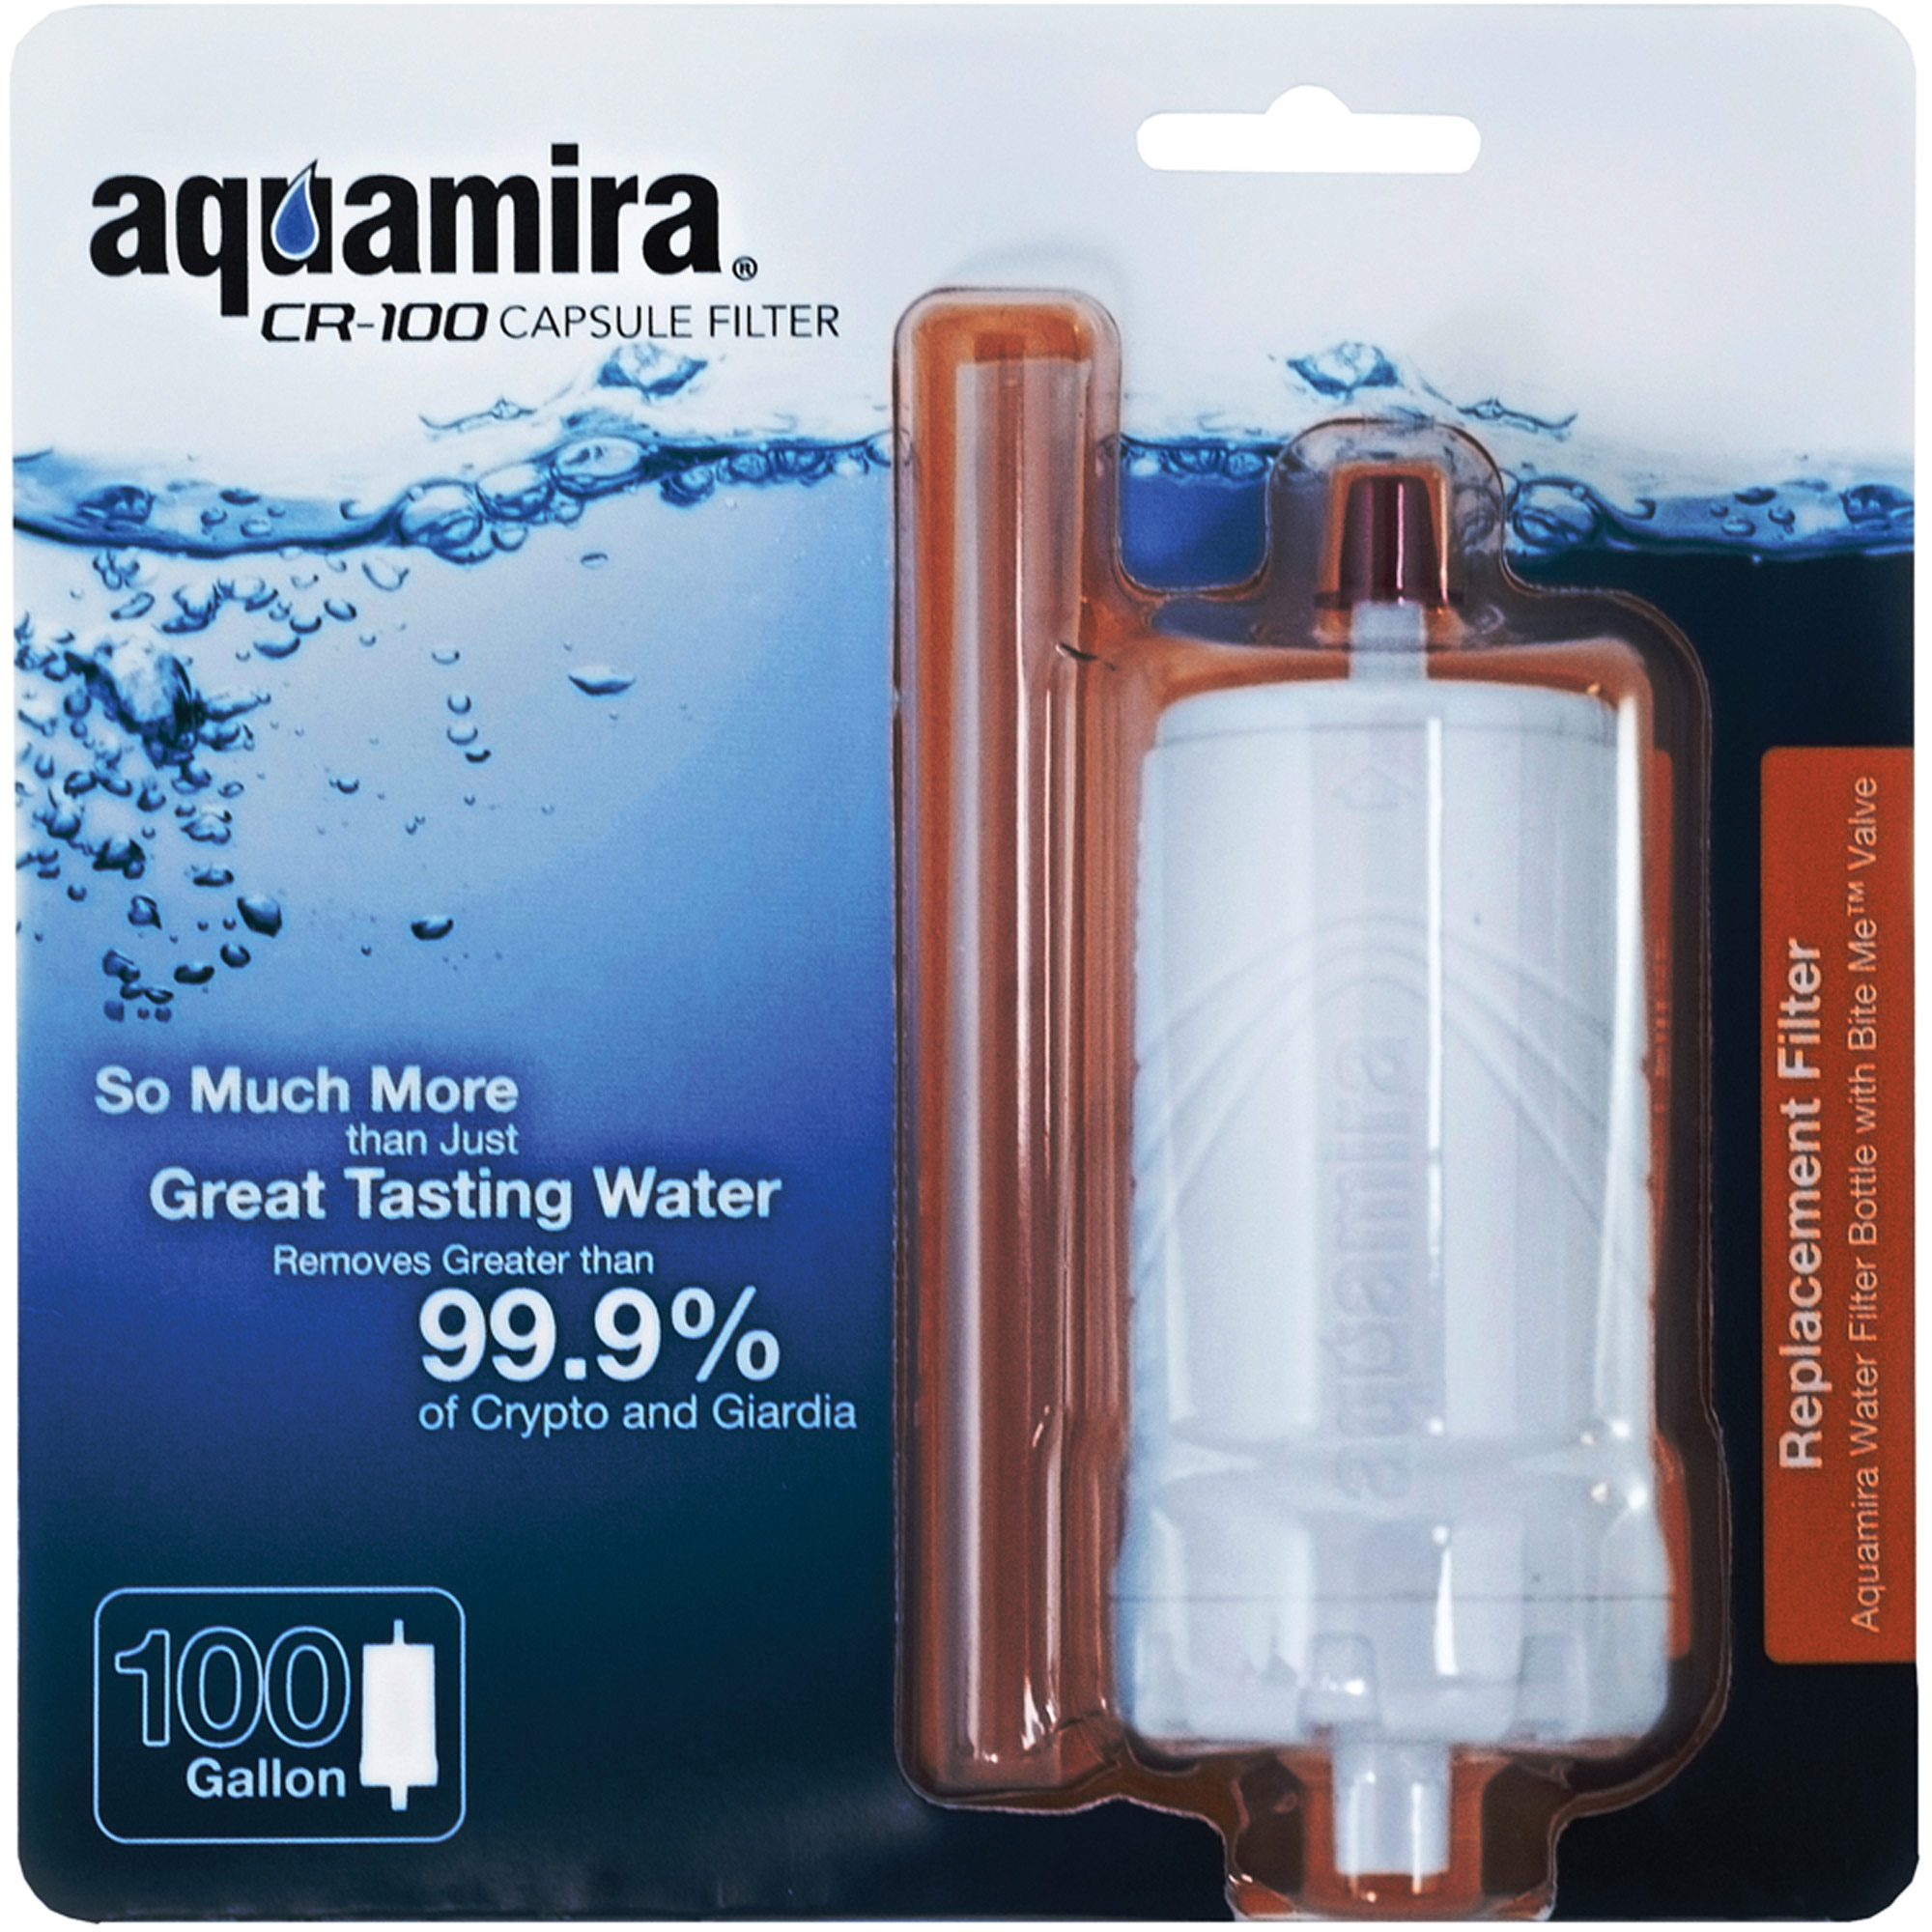 Aquamira CR-100 Capsule Filter, CR Filtration, Technology 100 Gallon Capacity